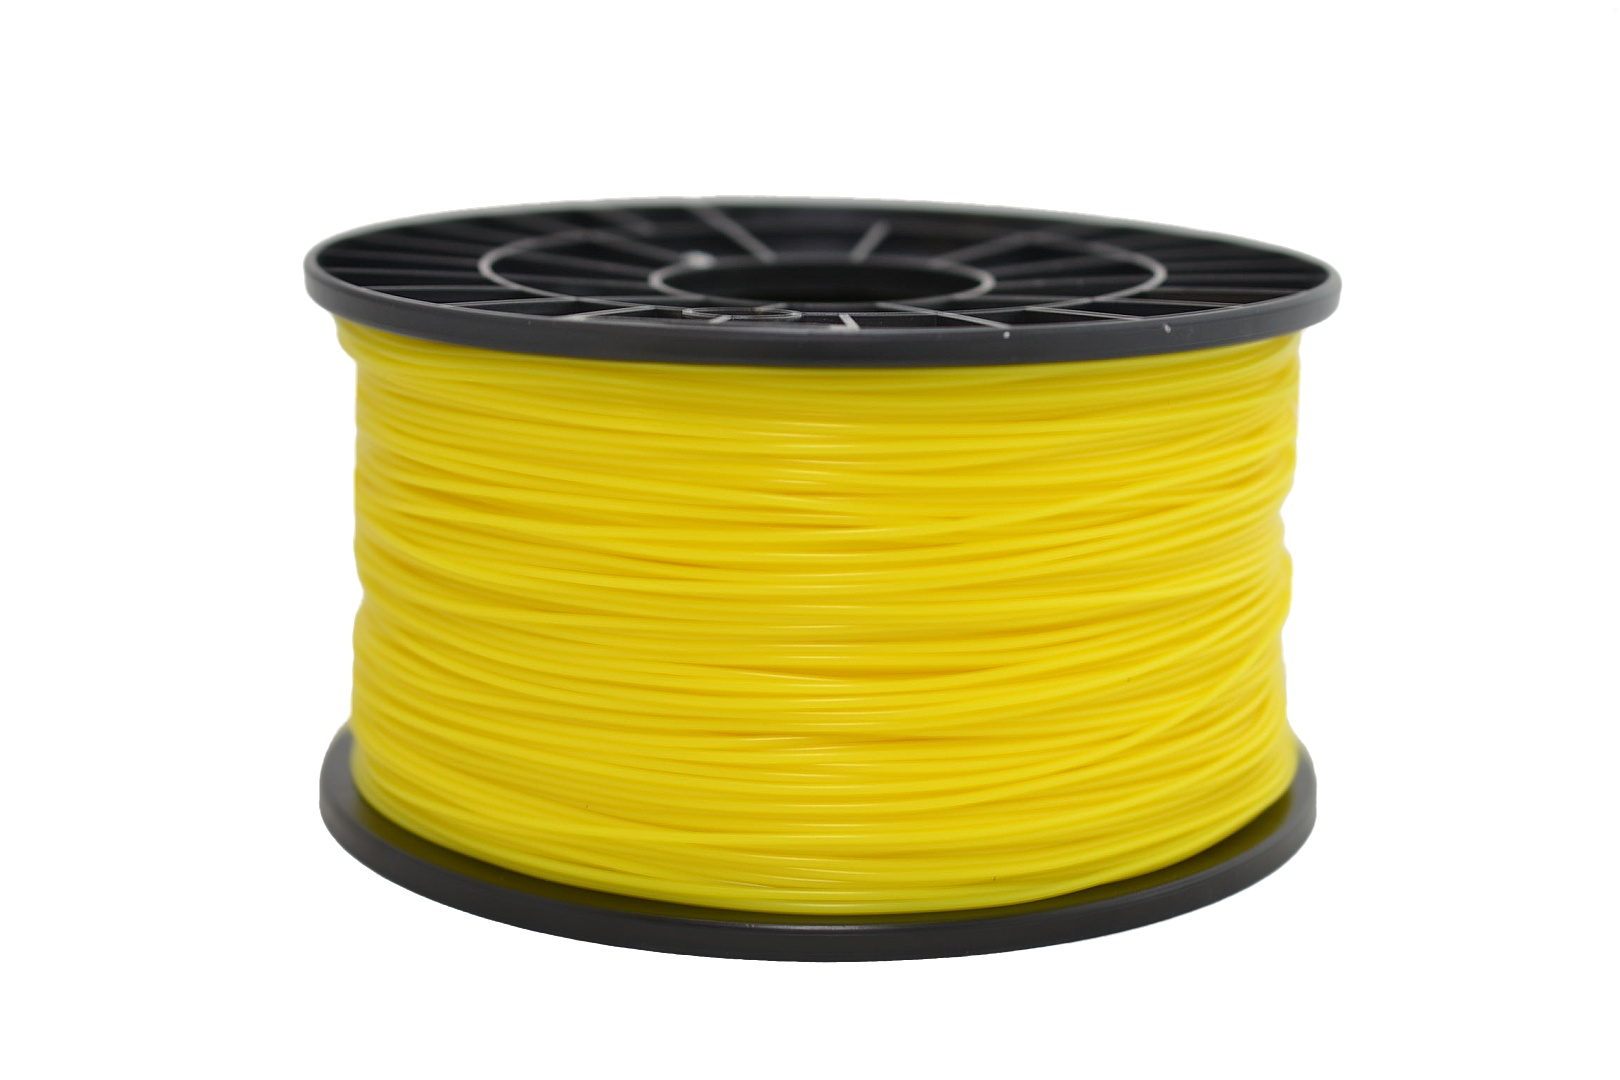 Polypropylen filament žlutá 1,75 mm 0,9 kg